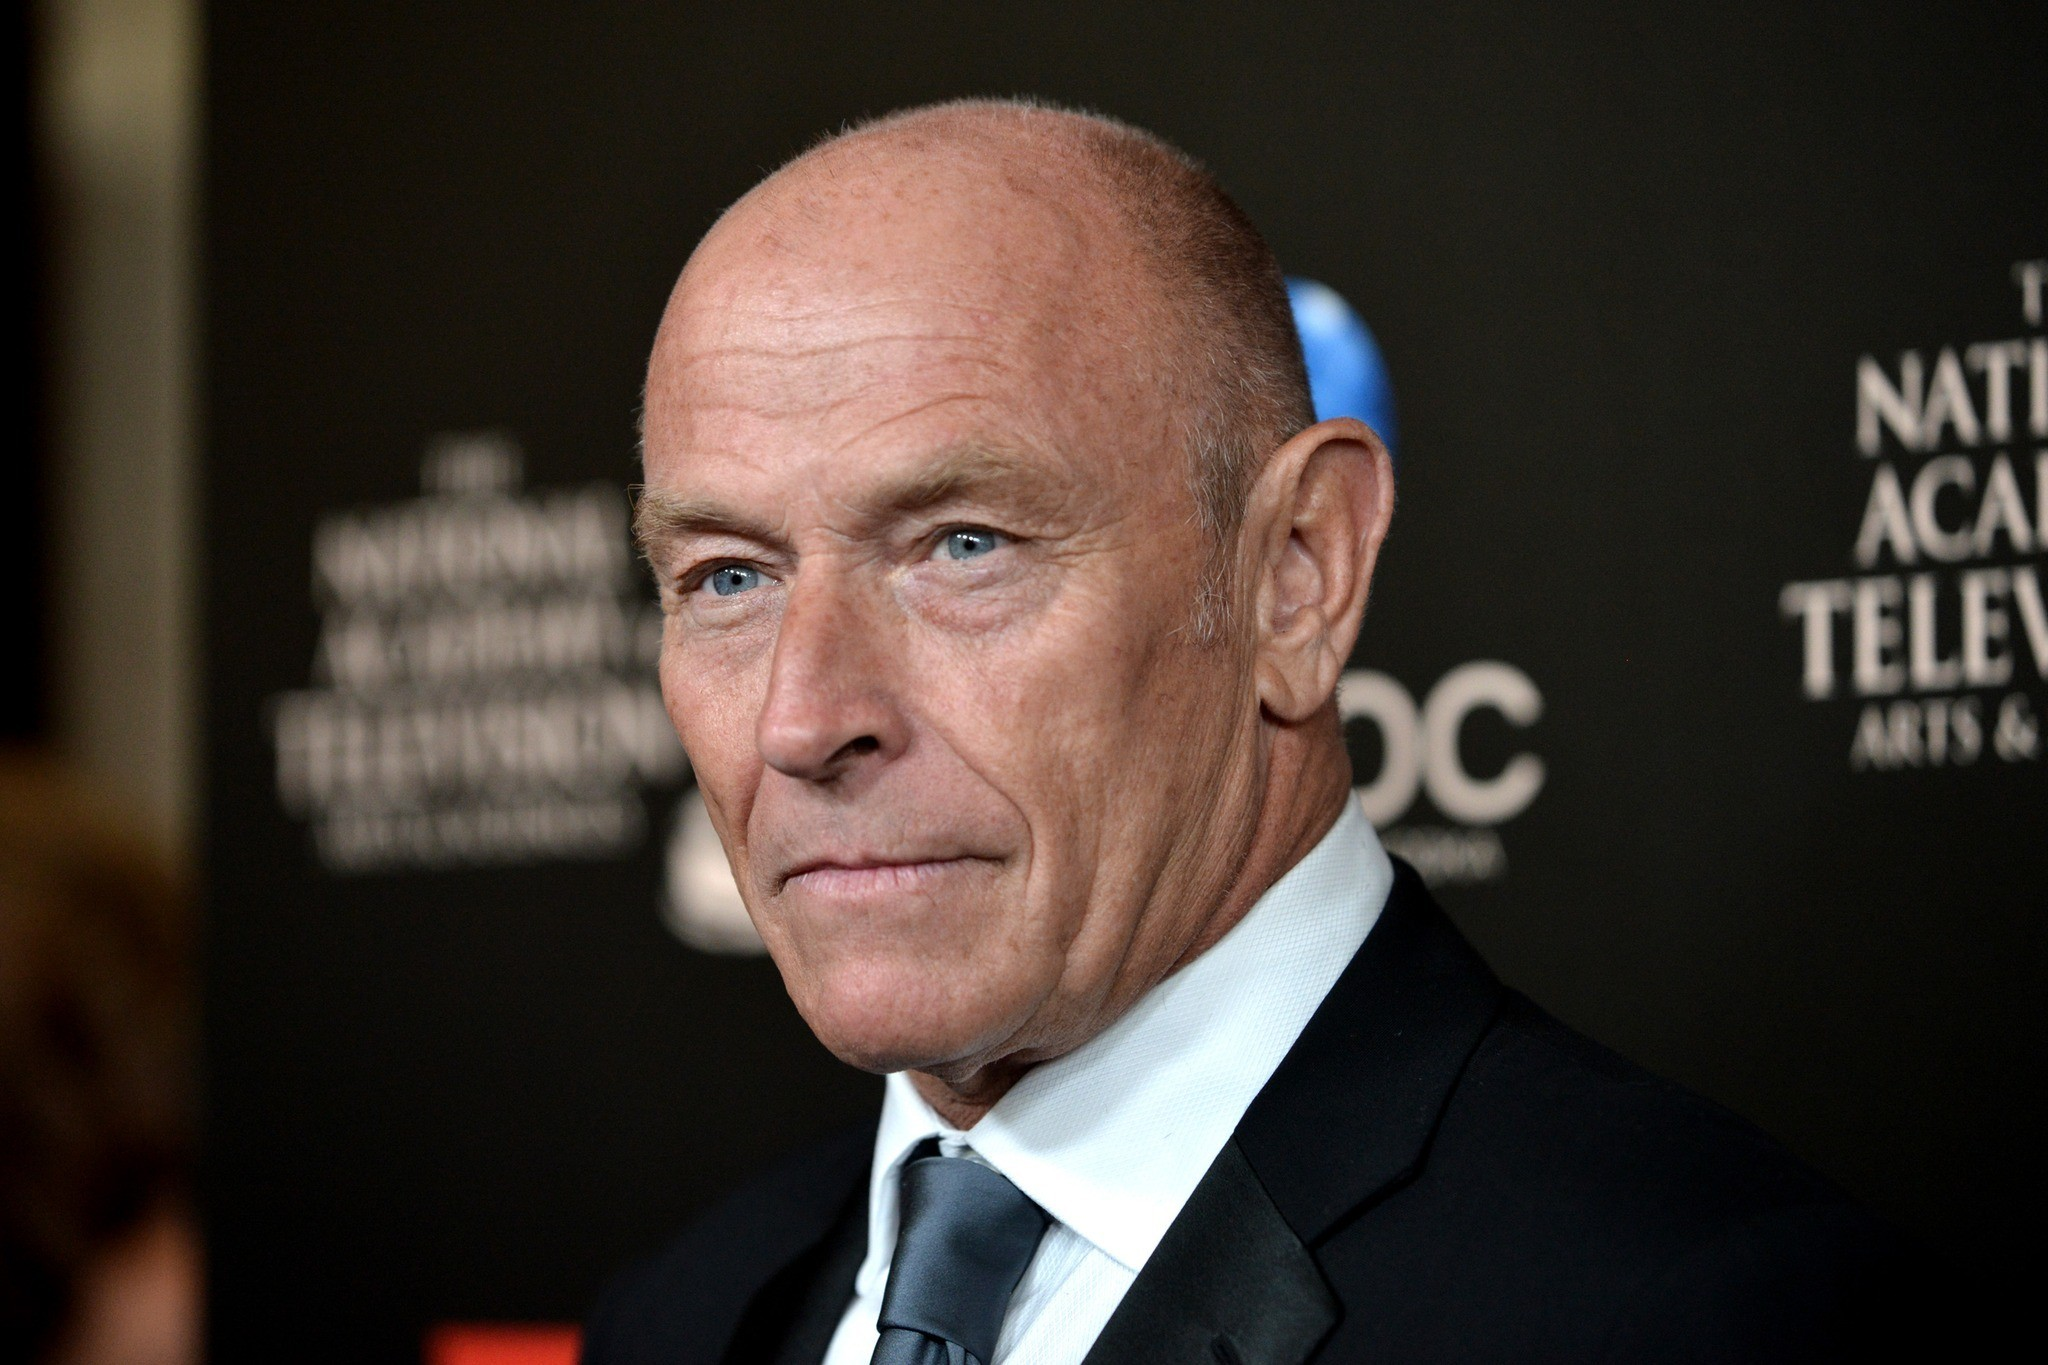 Corbin Bernsen HQ wallpapers